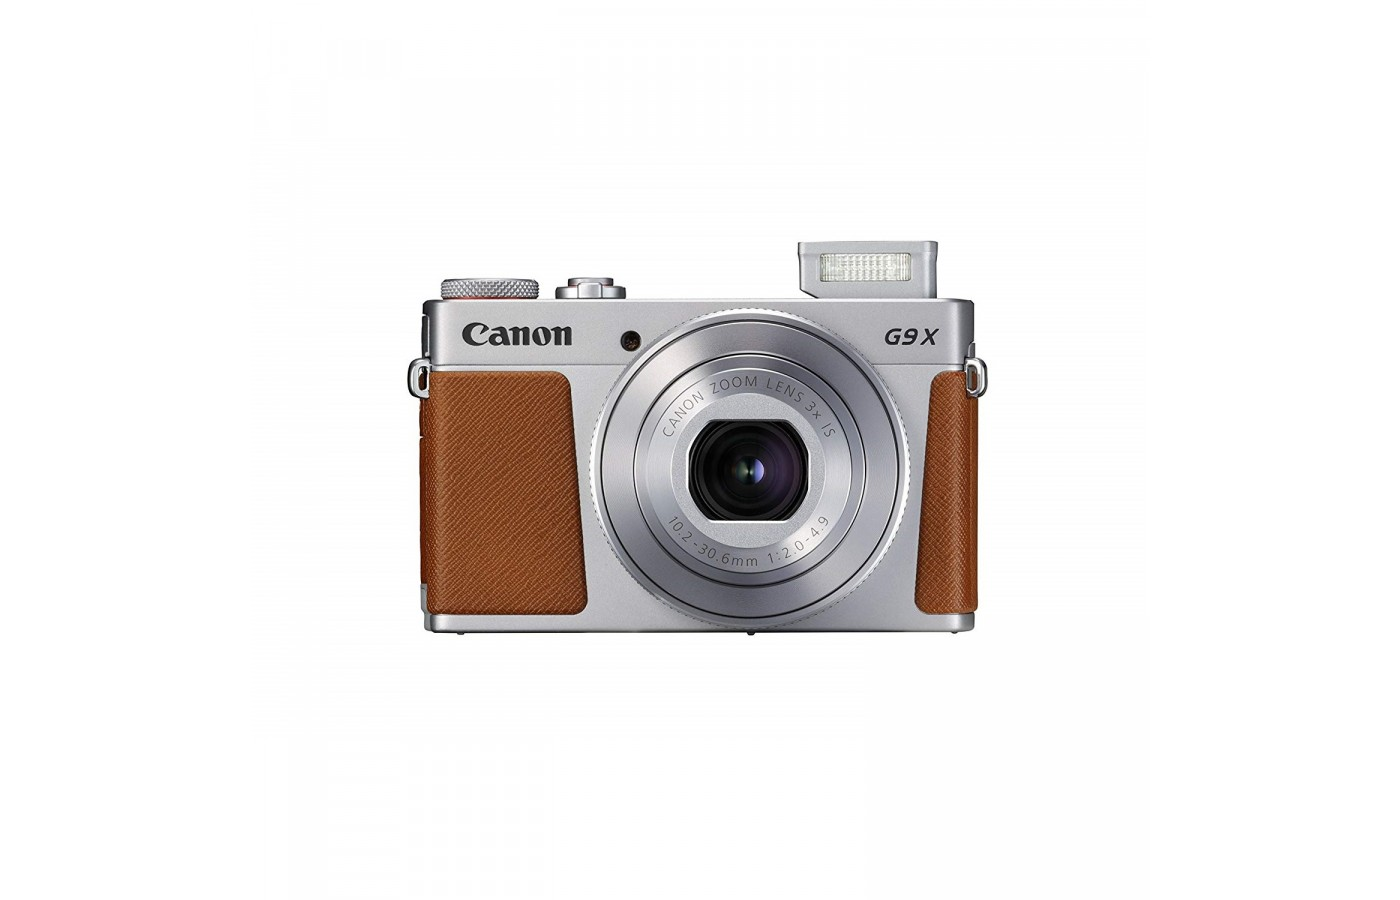 The Canon Powershot G9 X is ultra-slim and lightweight for easy towing.